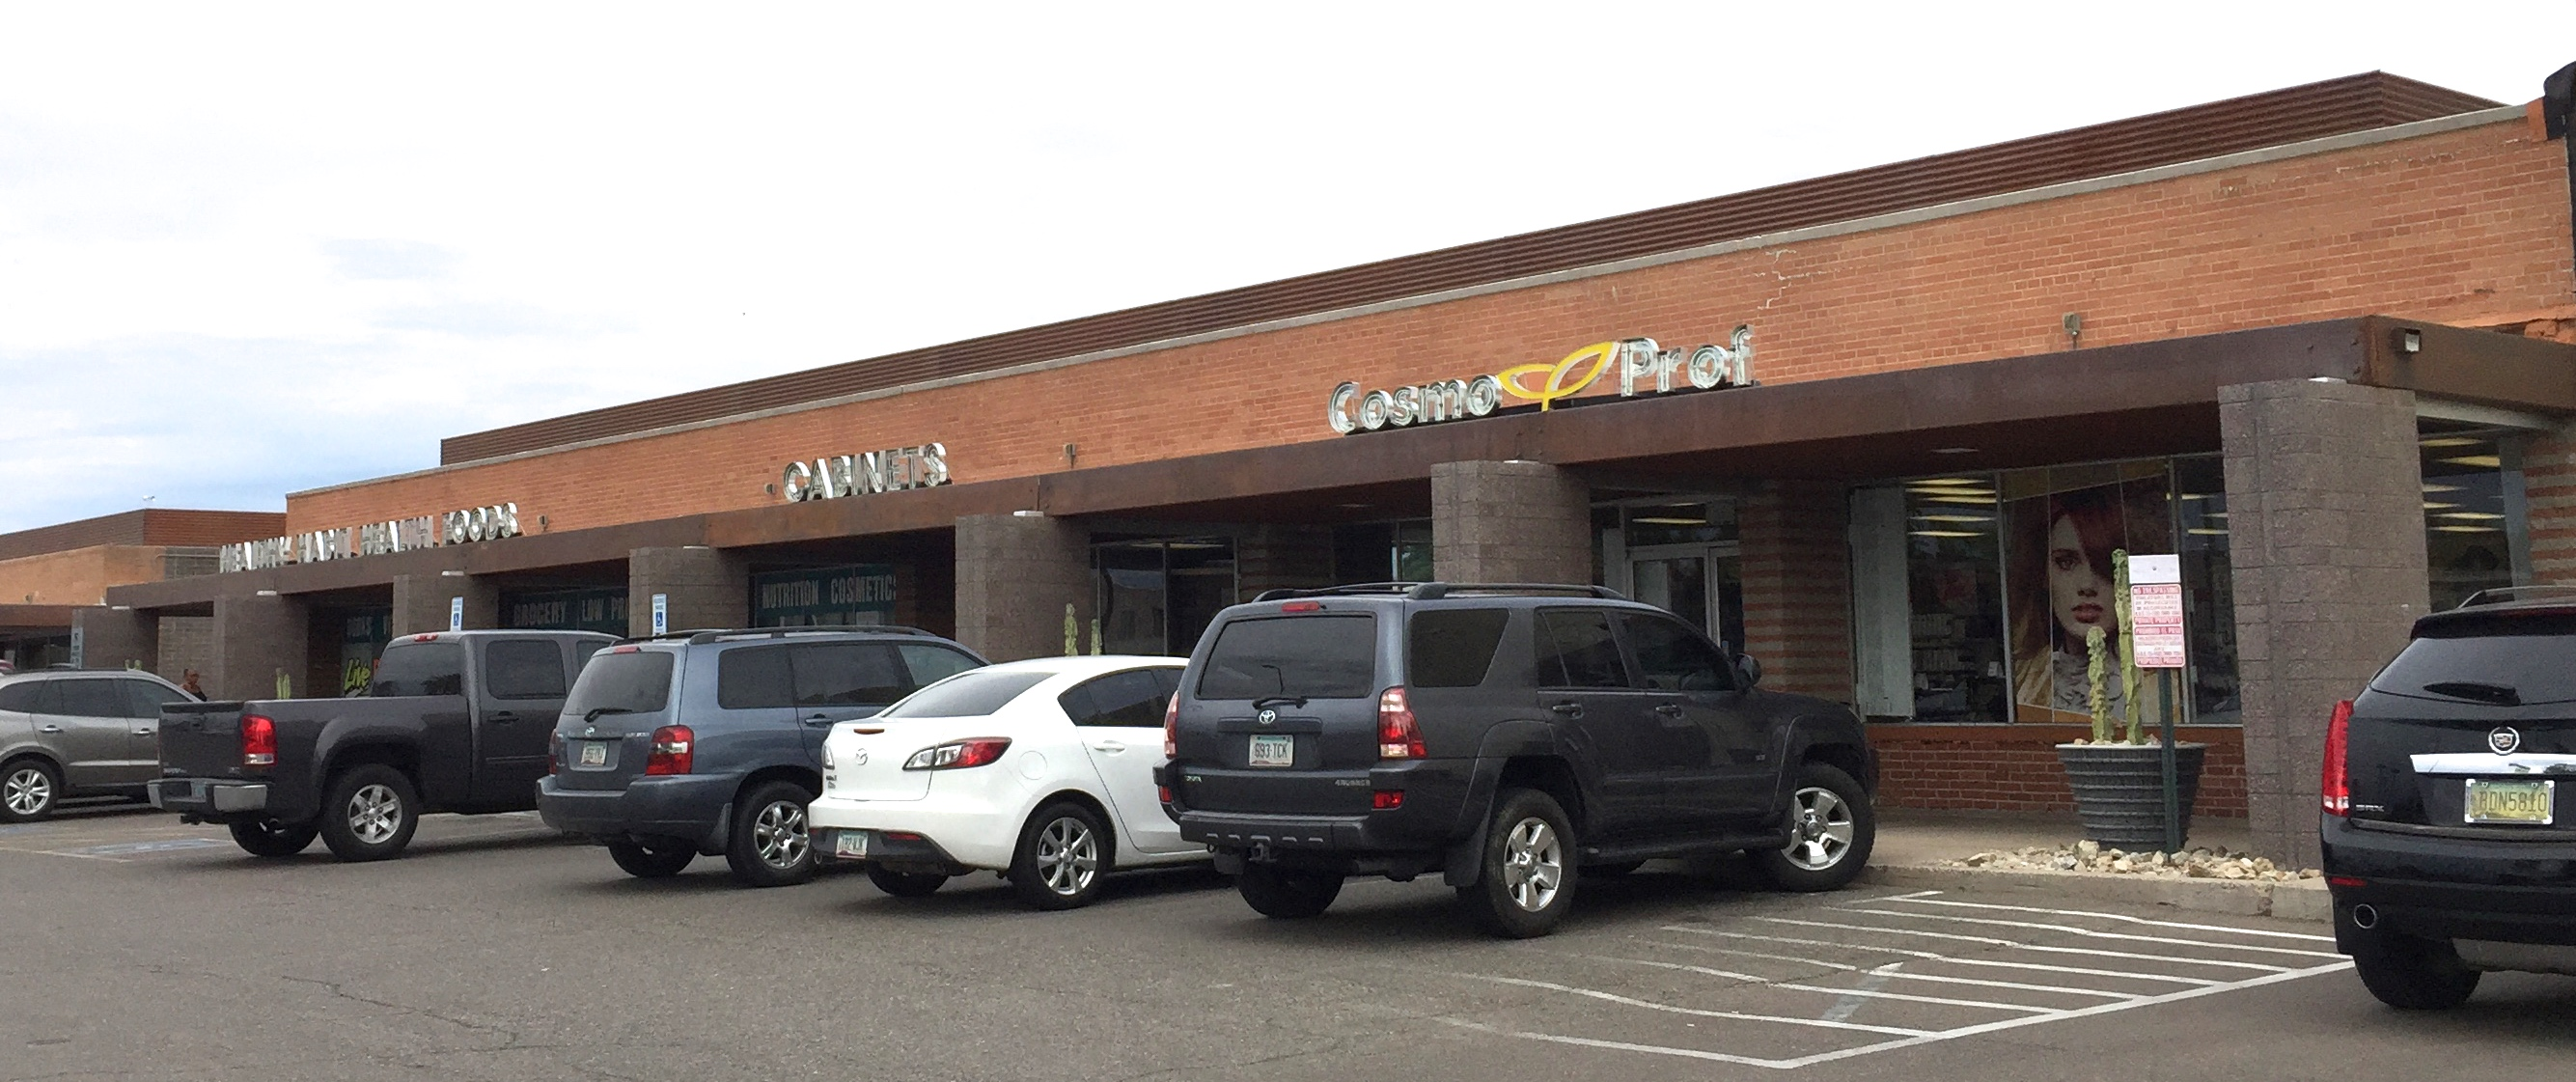 Phoenix Retail Space For Sale | Vestis Group